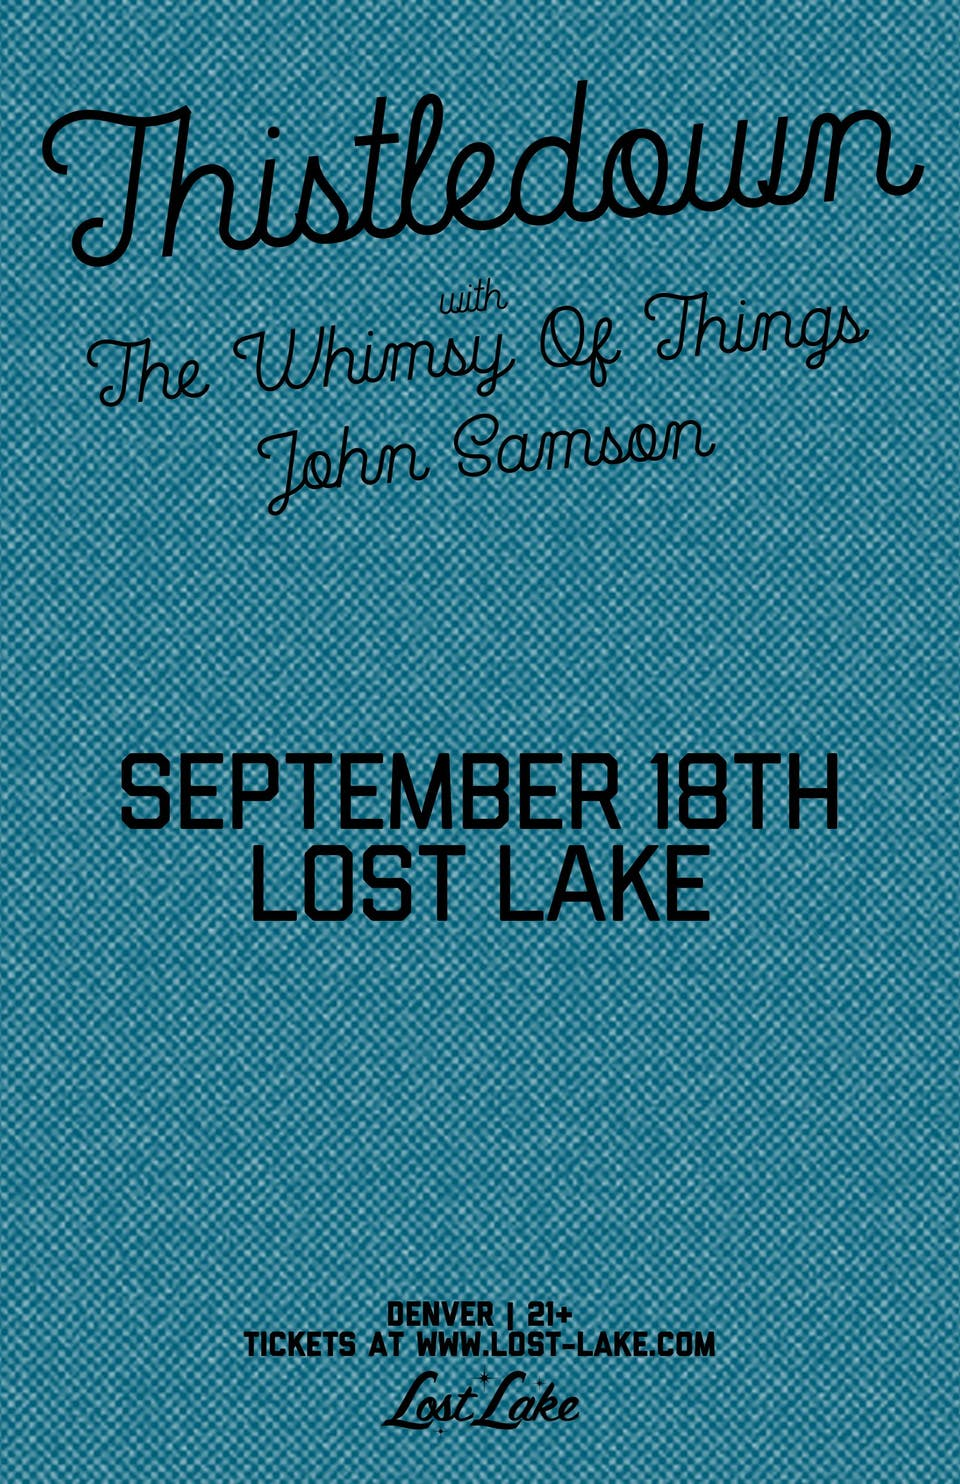 Thistledown / The Whimsy of Things / John Samson